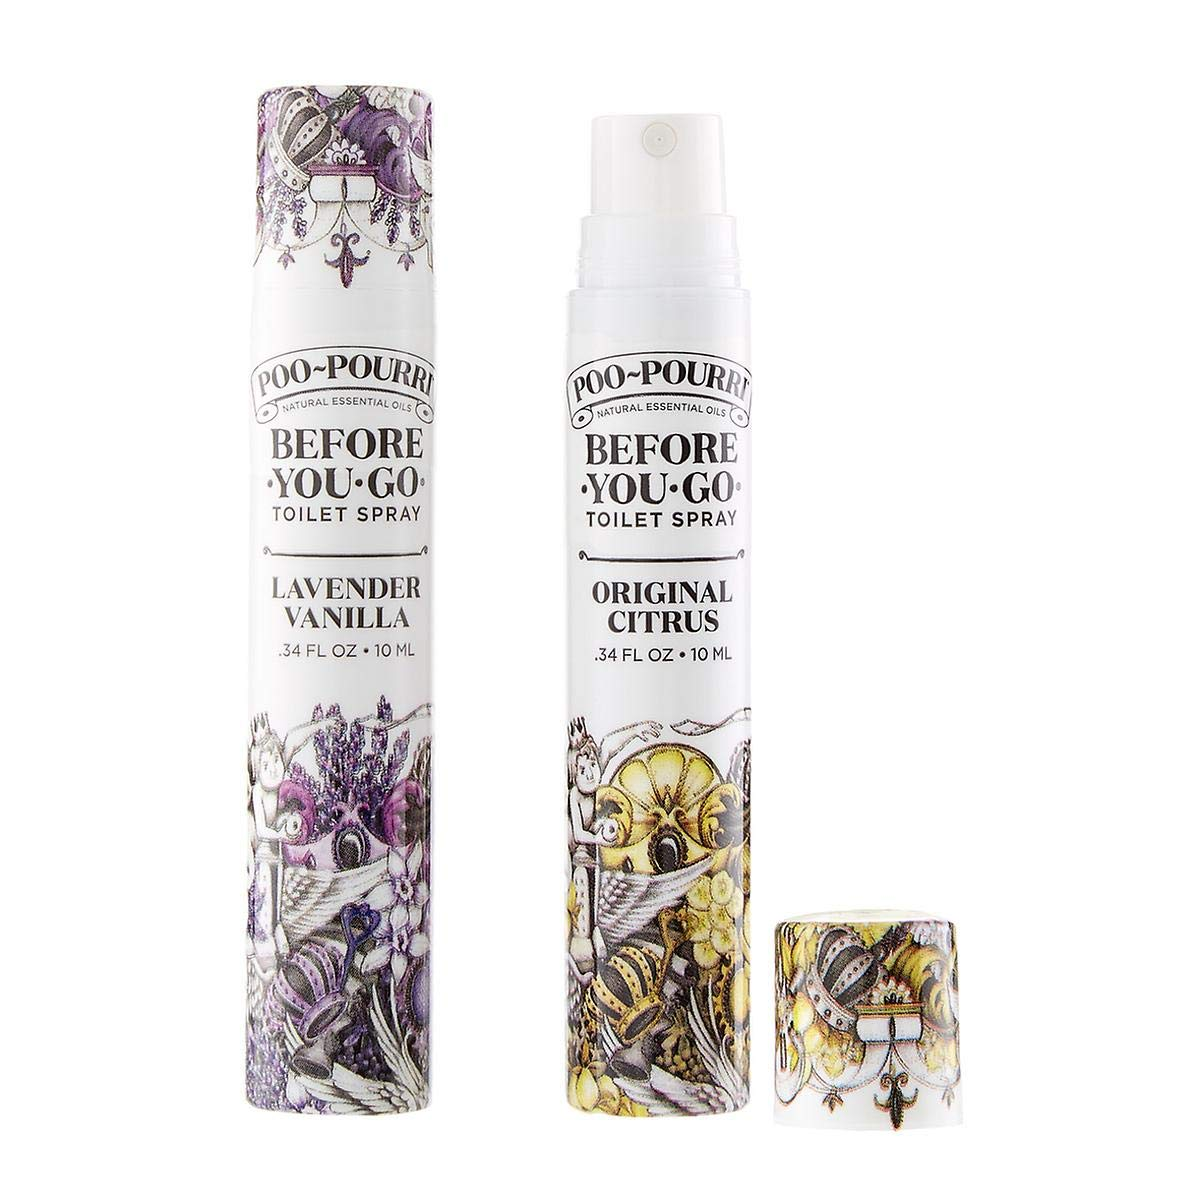 Poo-Pourri Travel Size 10mL - (2) Original Scent, (2) Lavender Vanilla Scent and Tropical Hibiscus 1.4 Ounce Bottle with Bottle Tag Included by Poo-Pourri (Image #6)